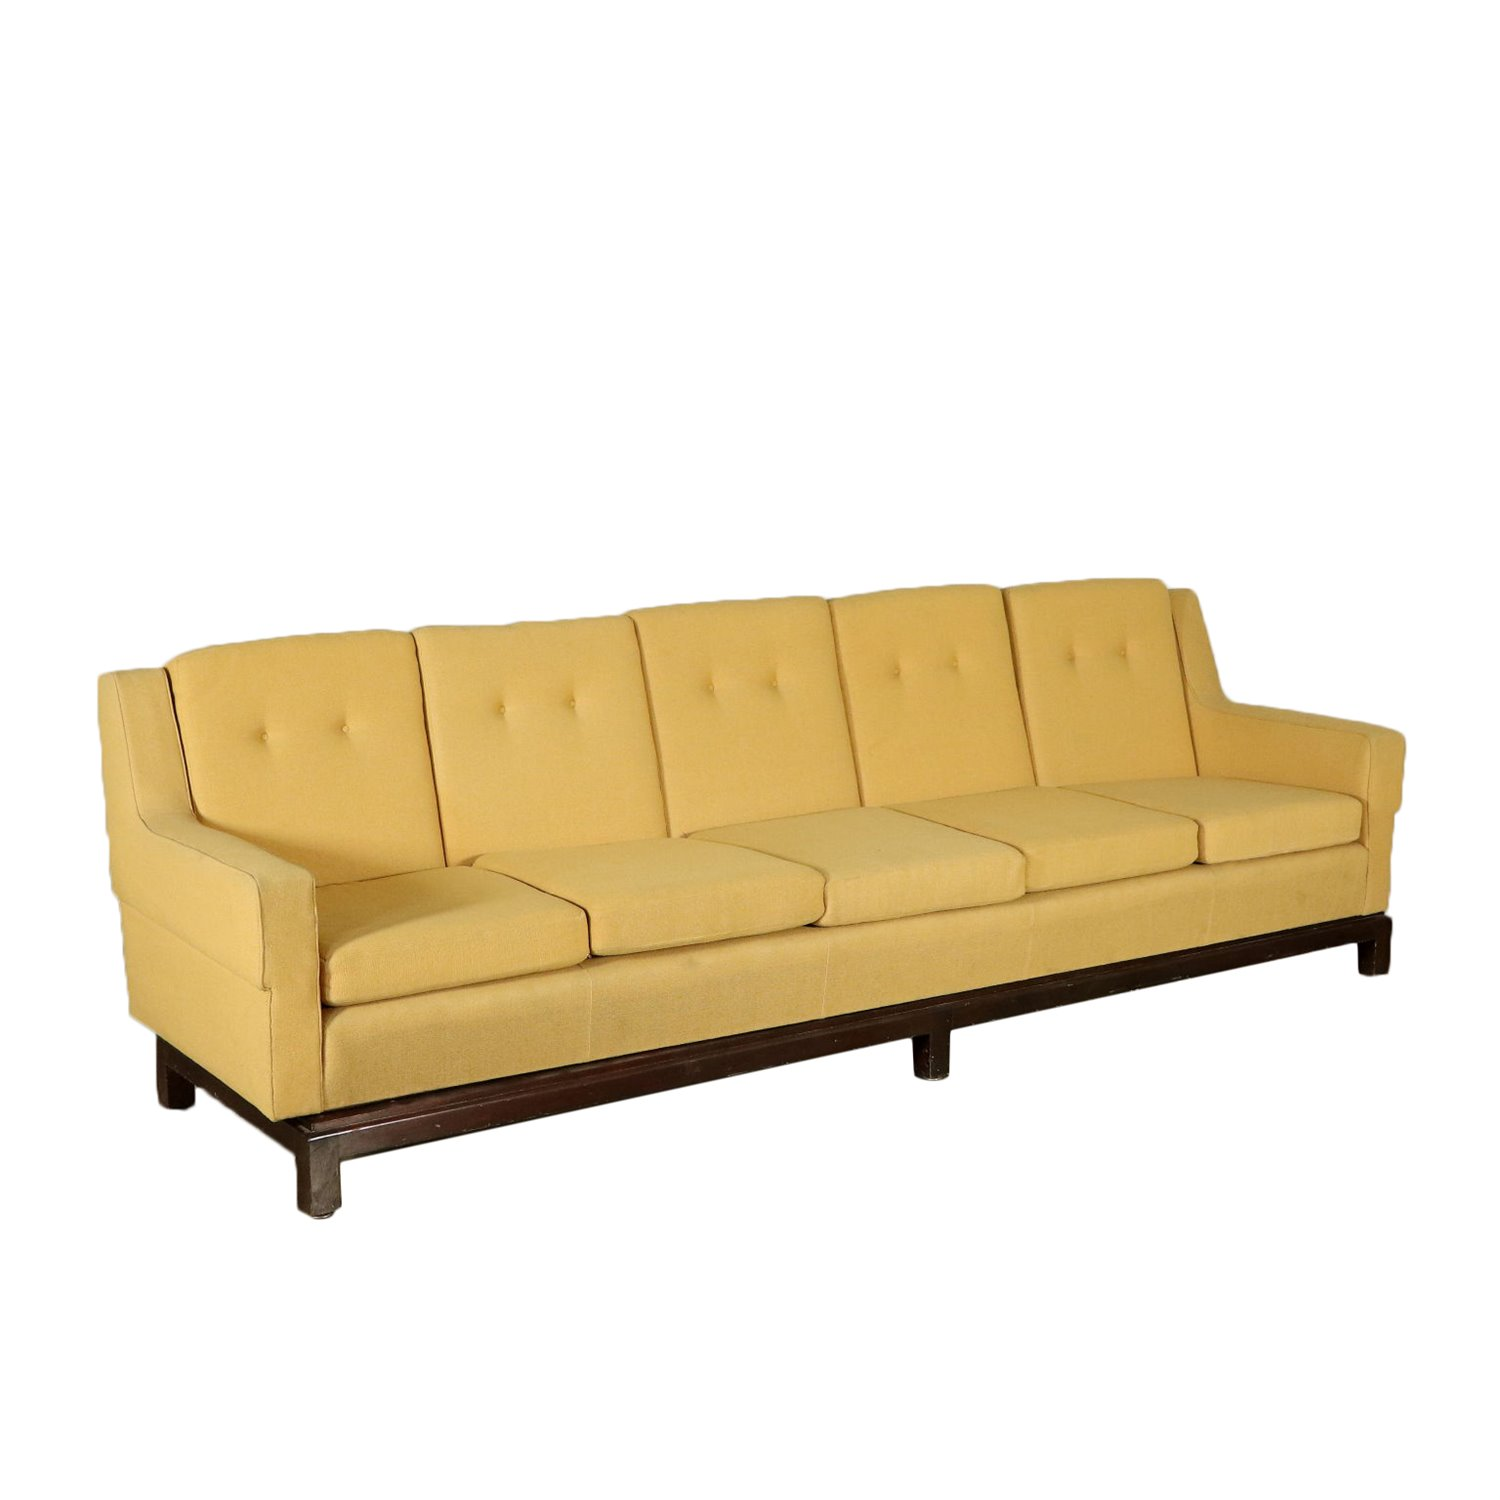 5 Seater Sofa Fabric Upholstery Vintage